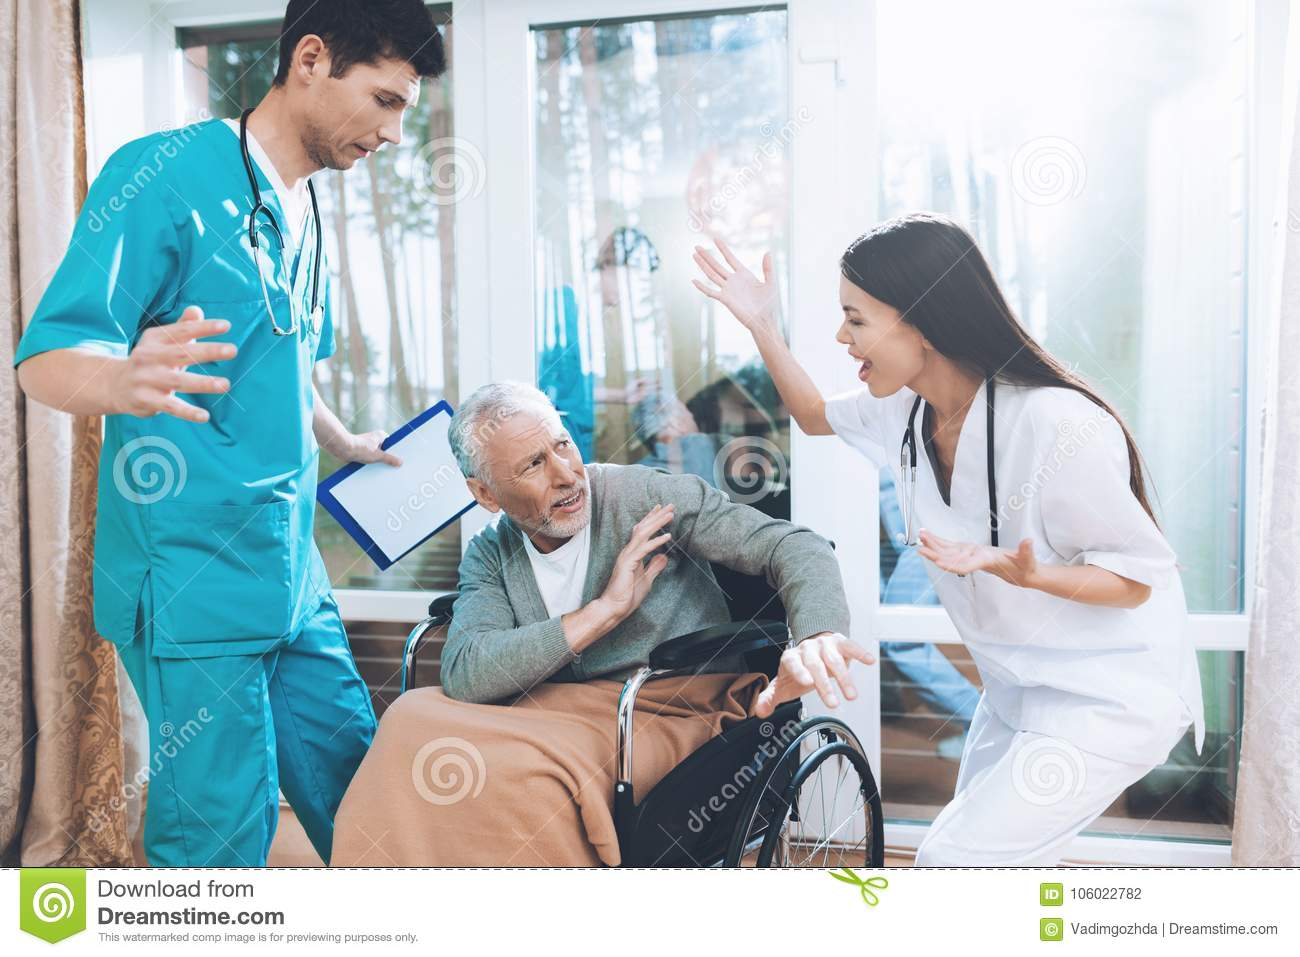 Medical Workers Argue With An Elderly Couple In A Nursing Home Stock Photo Image Of Home Doctor 106022782